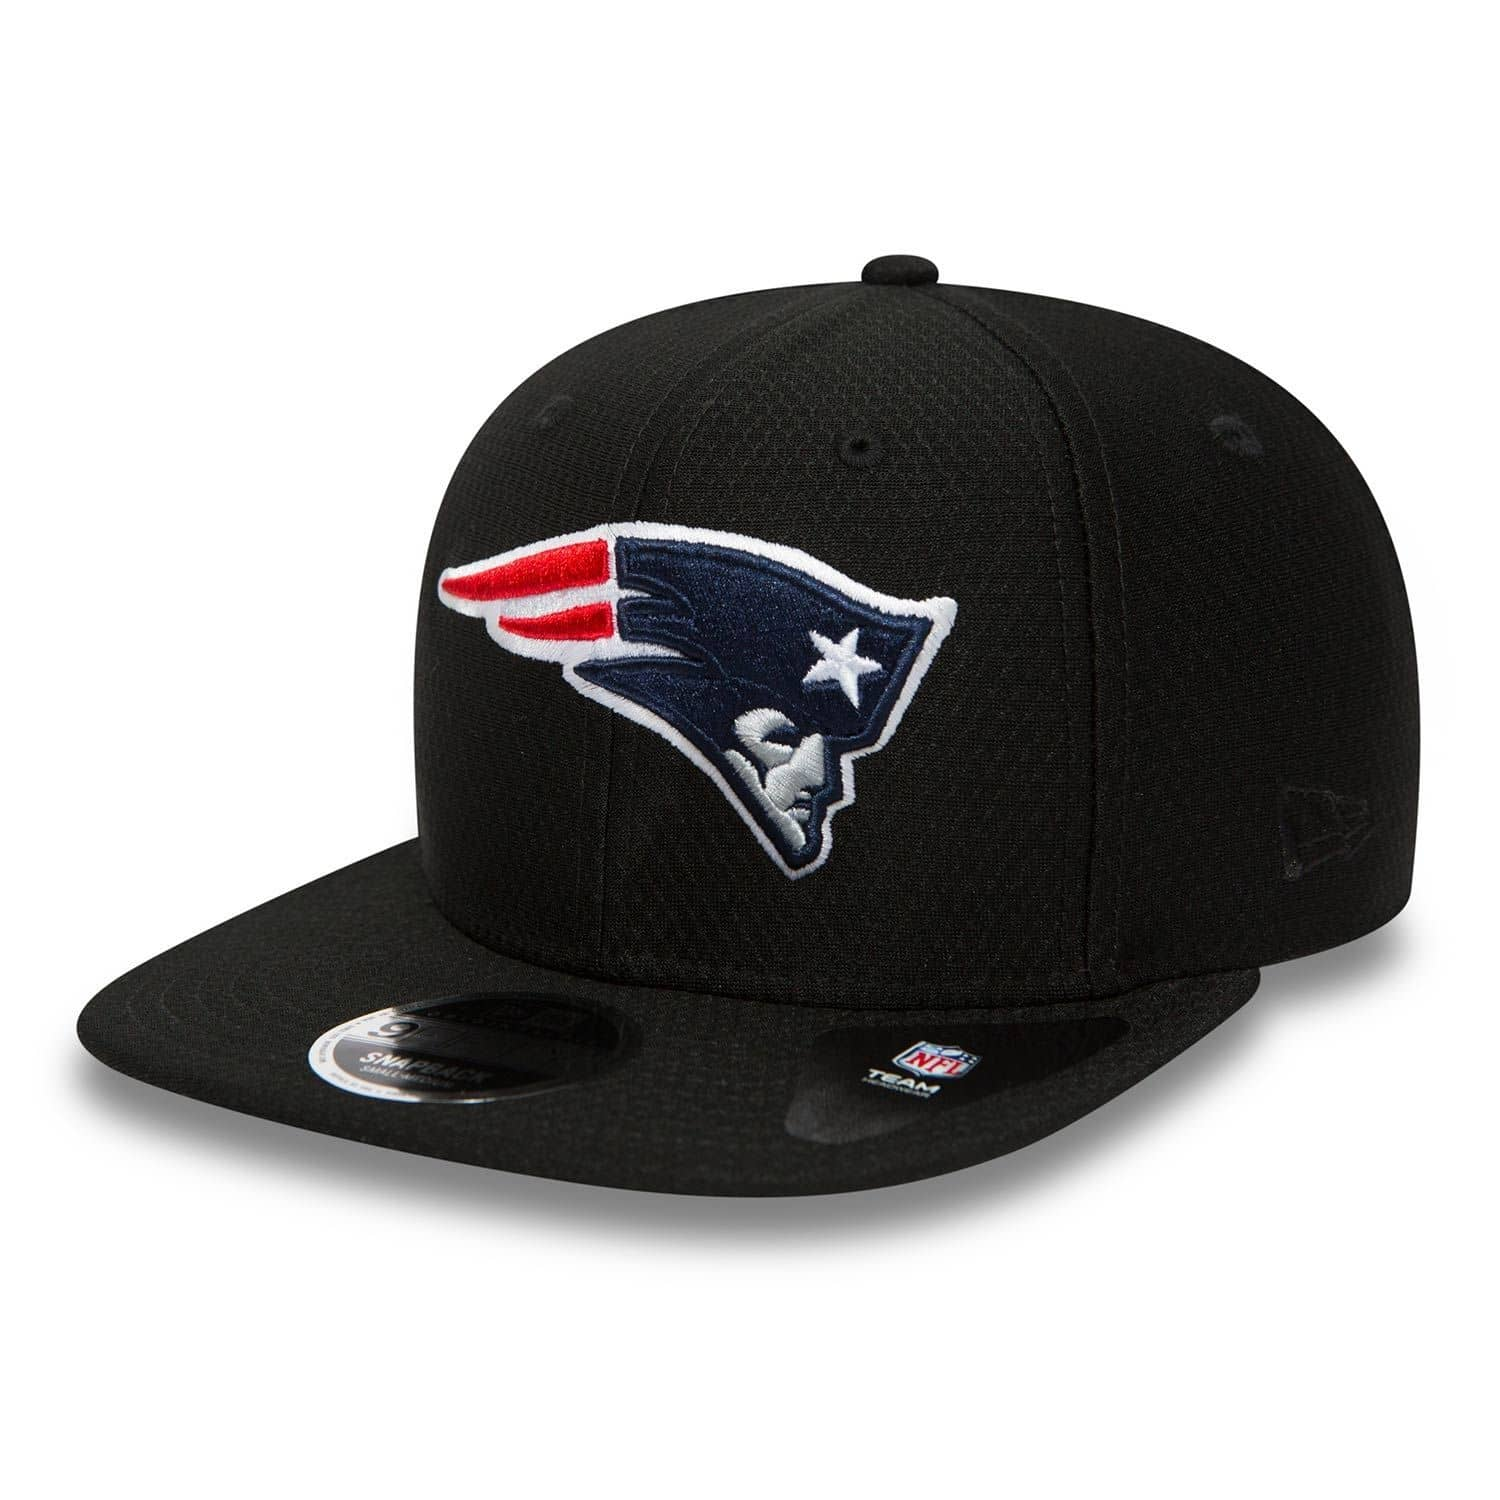 size 40 f74ad a59e4 New Era New England Patriots Dry Era Tech NFL Snapback Cap   TAASS.com Fan  Shop